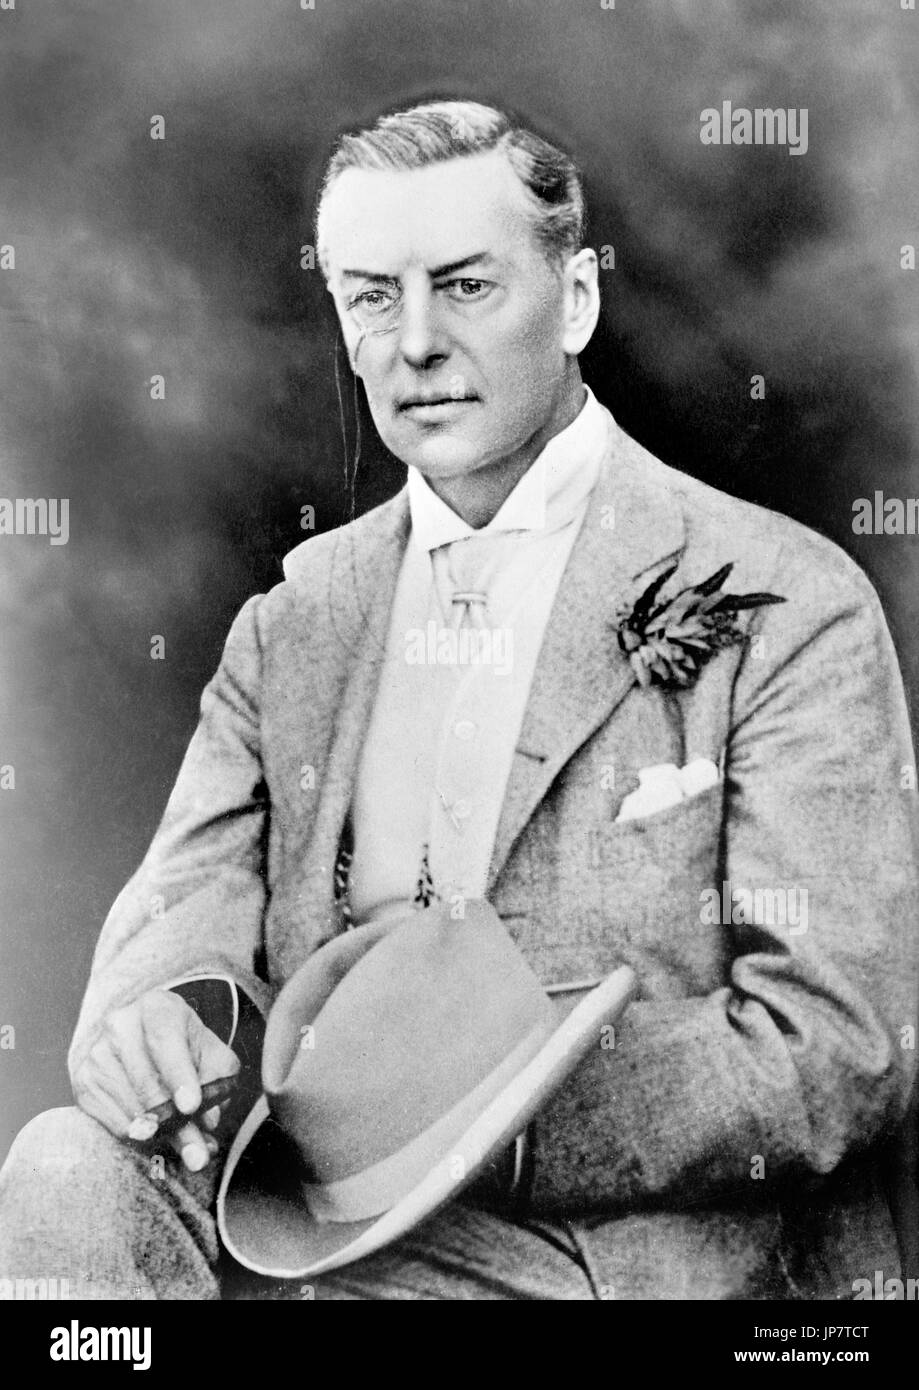 Joseph Chamberlain (1836-1914), Photograph of the British politician in 1909. Stock Photo